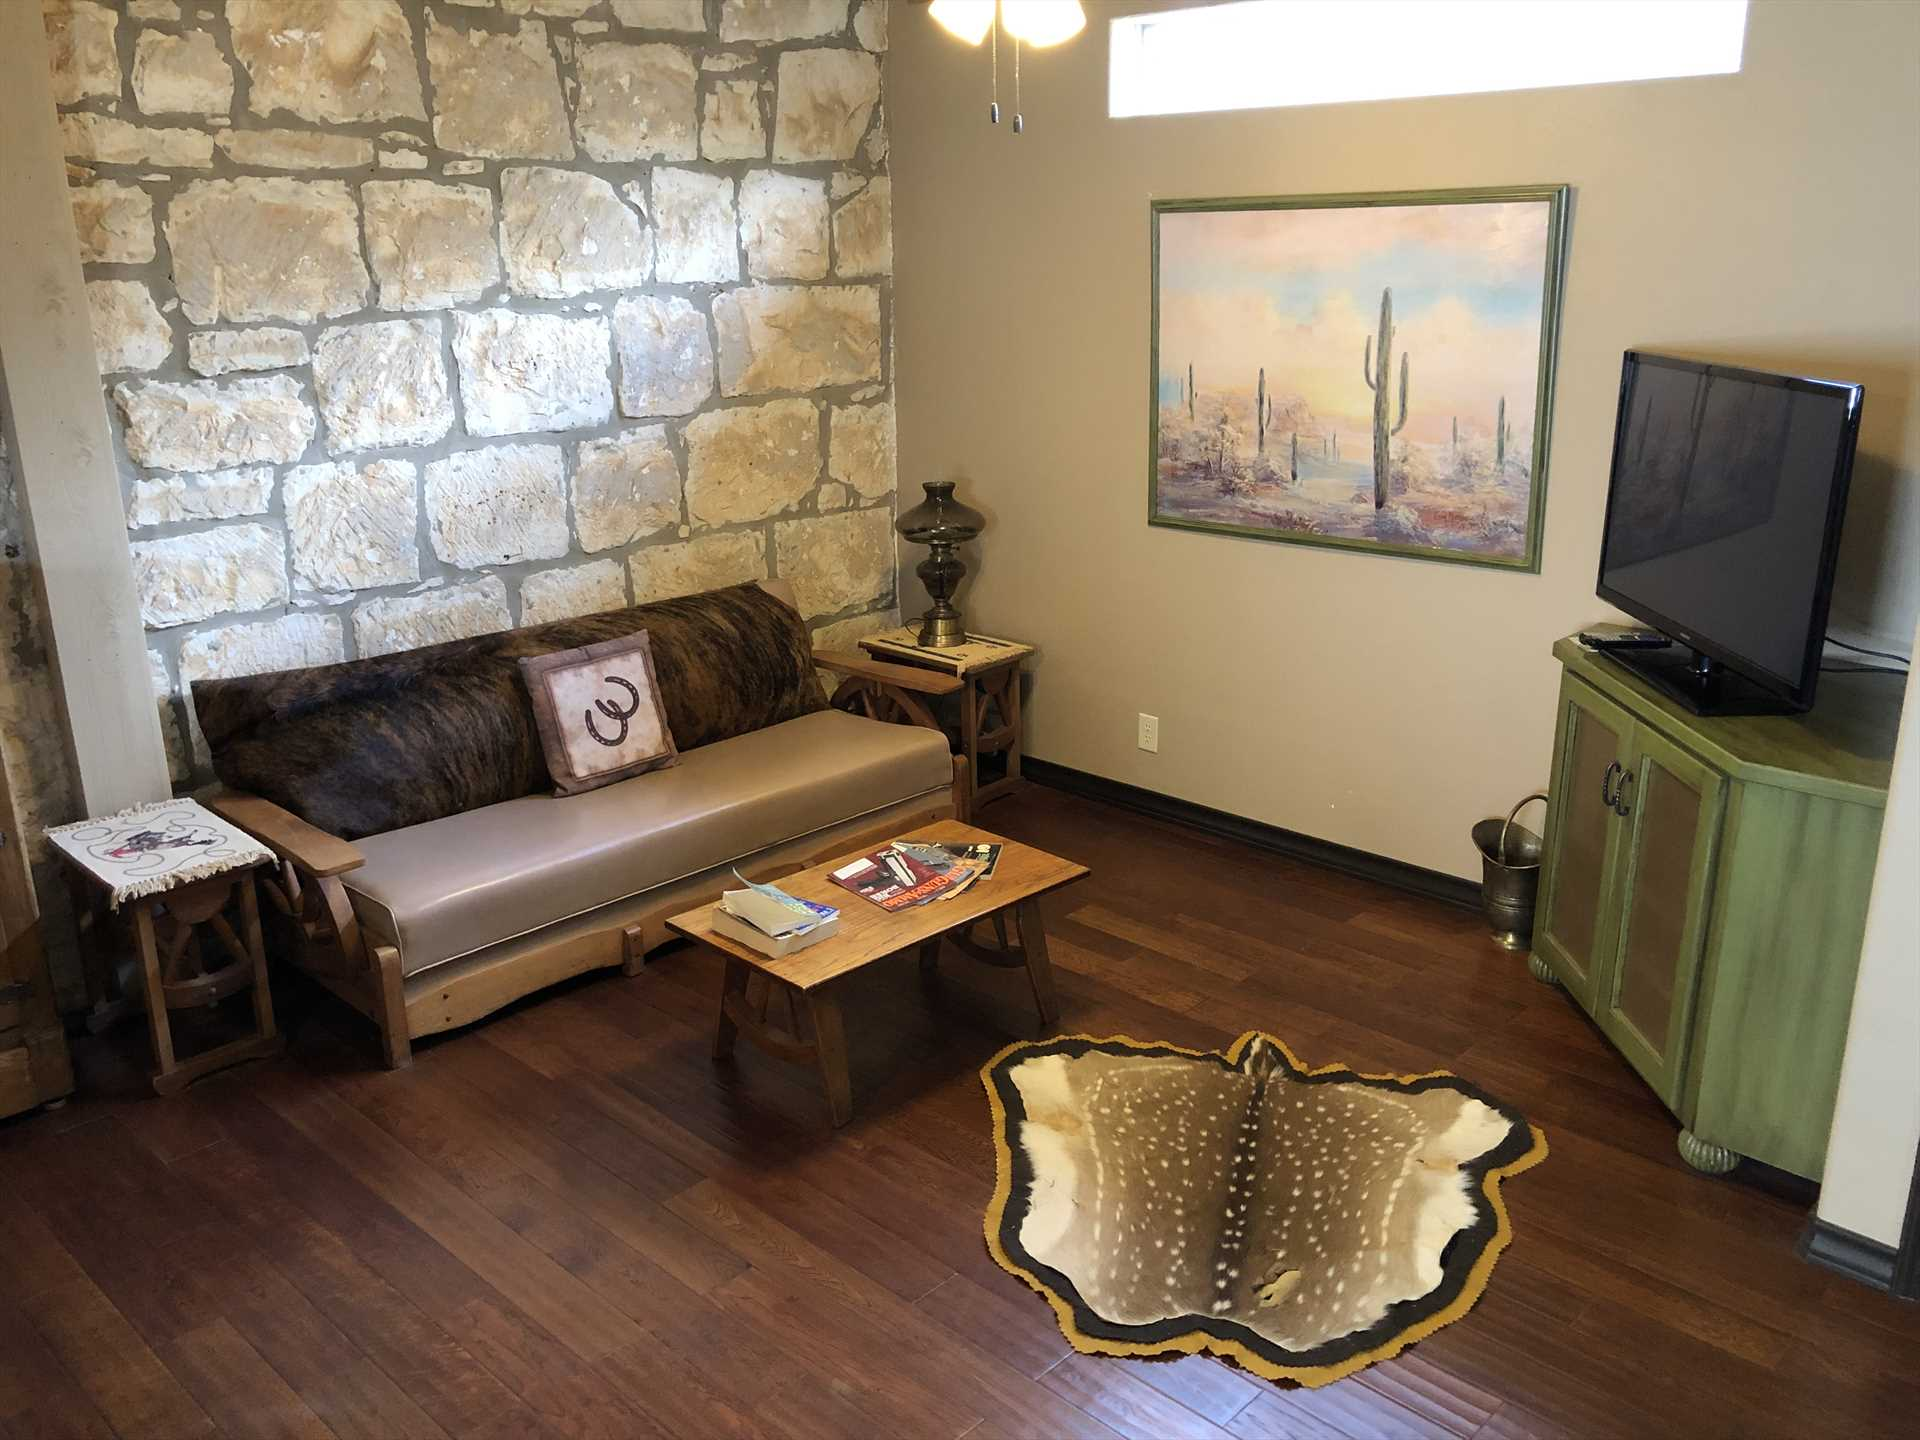 The living area evokes the history of the American cowboy, right at home in the Cowboy Capital of the World!